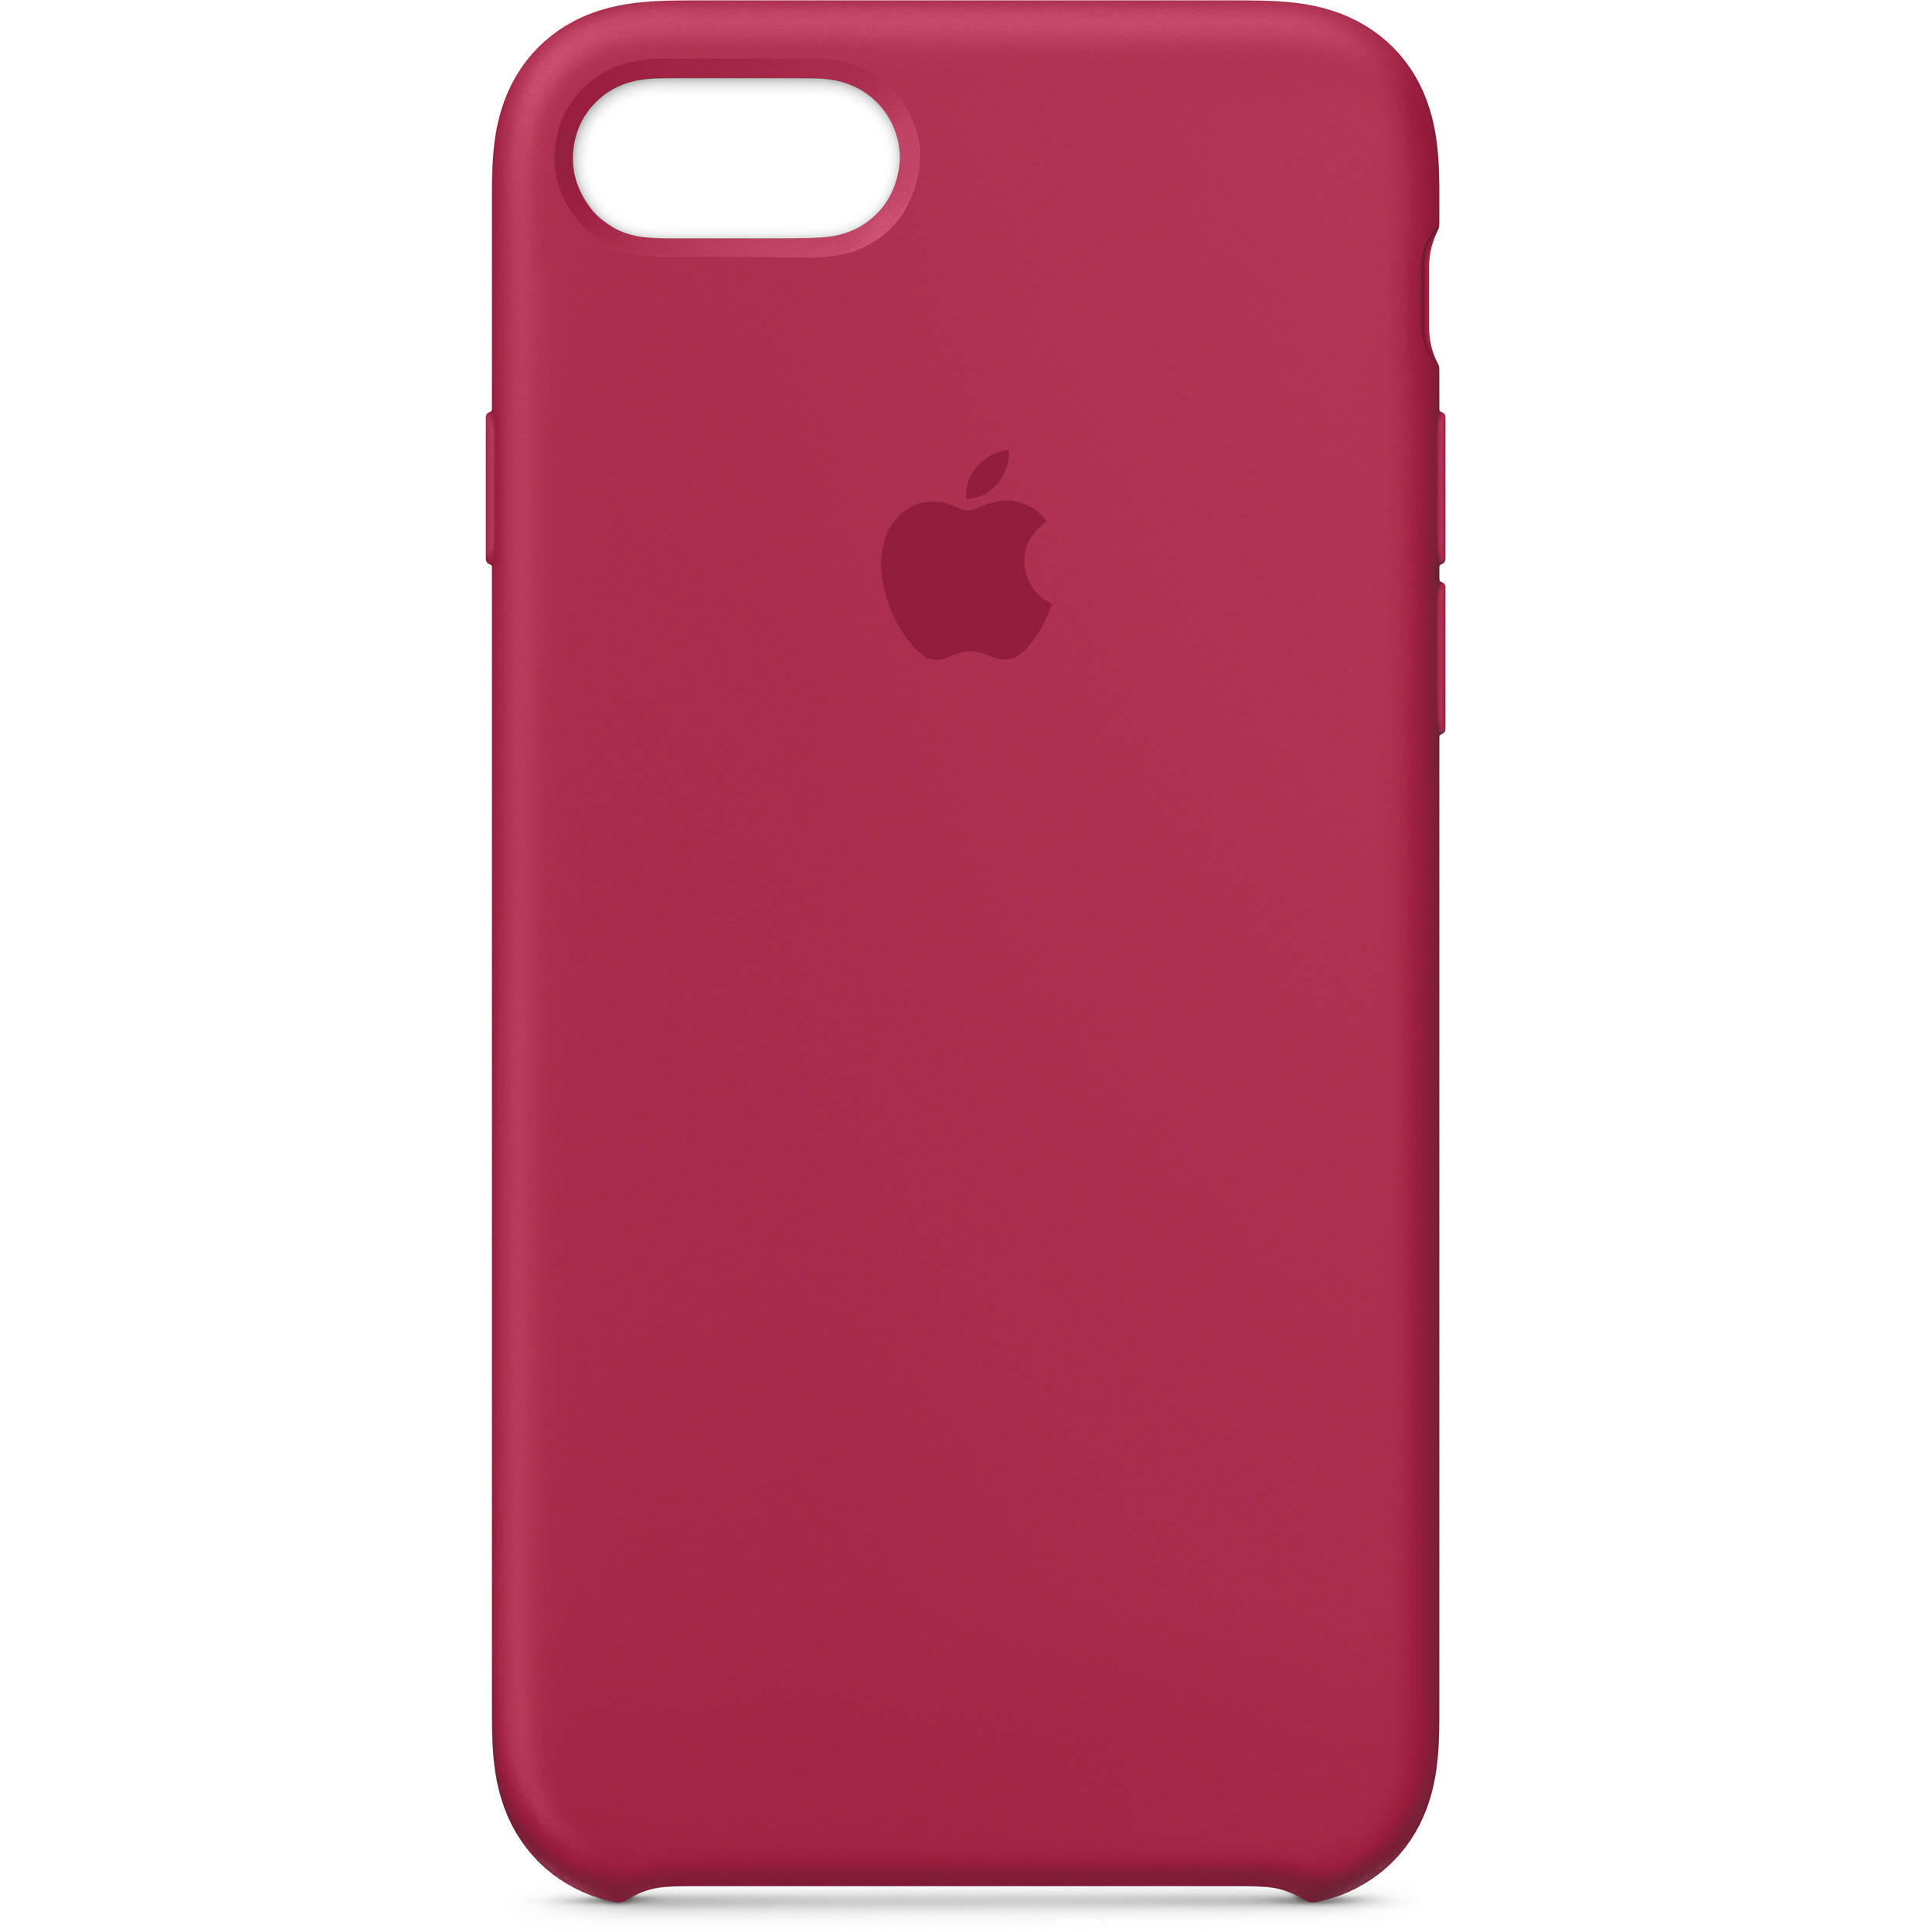 cheap for discount 5156c 8a3f6 Apple iPhone 7/8 Silicone Case (Rose Red)